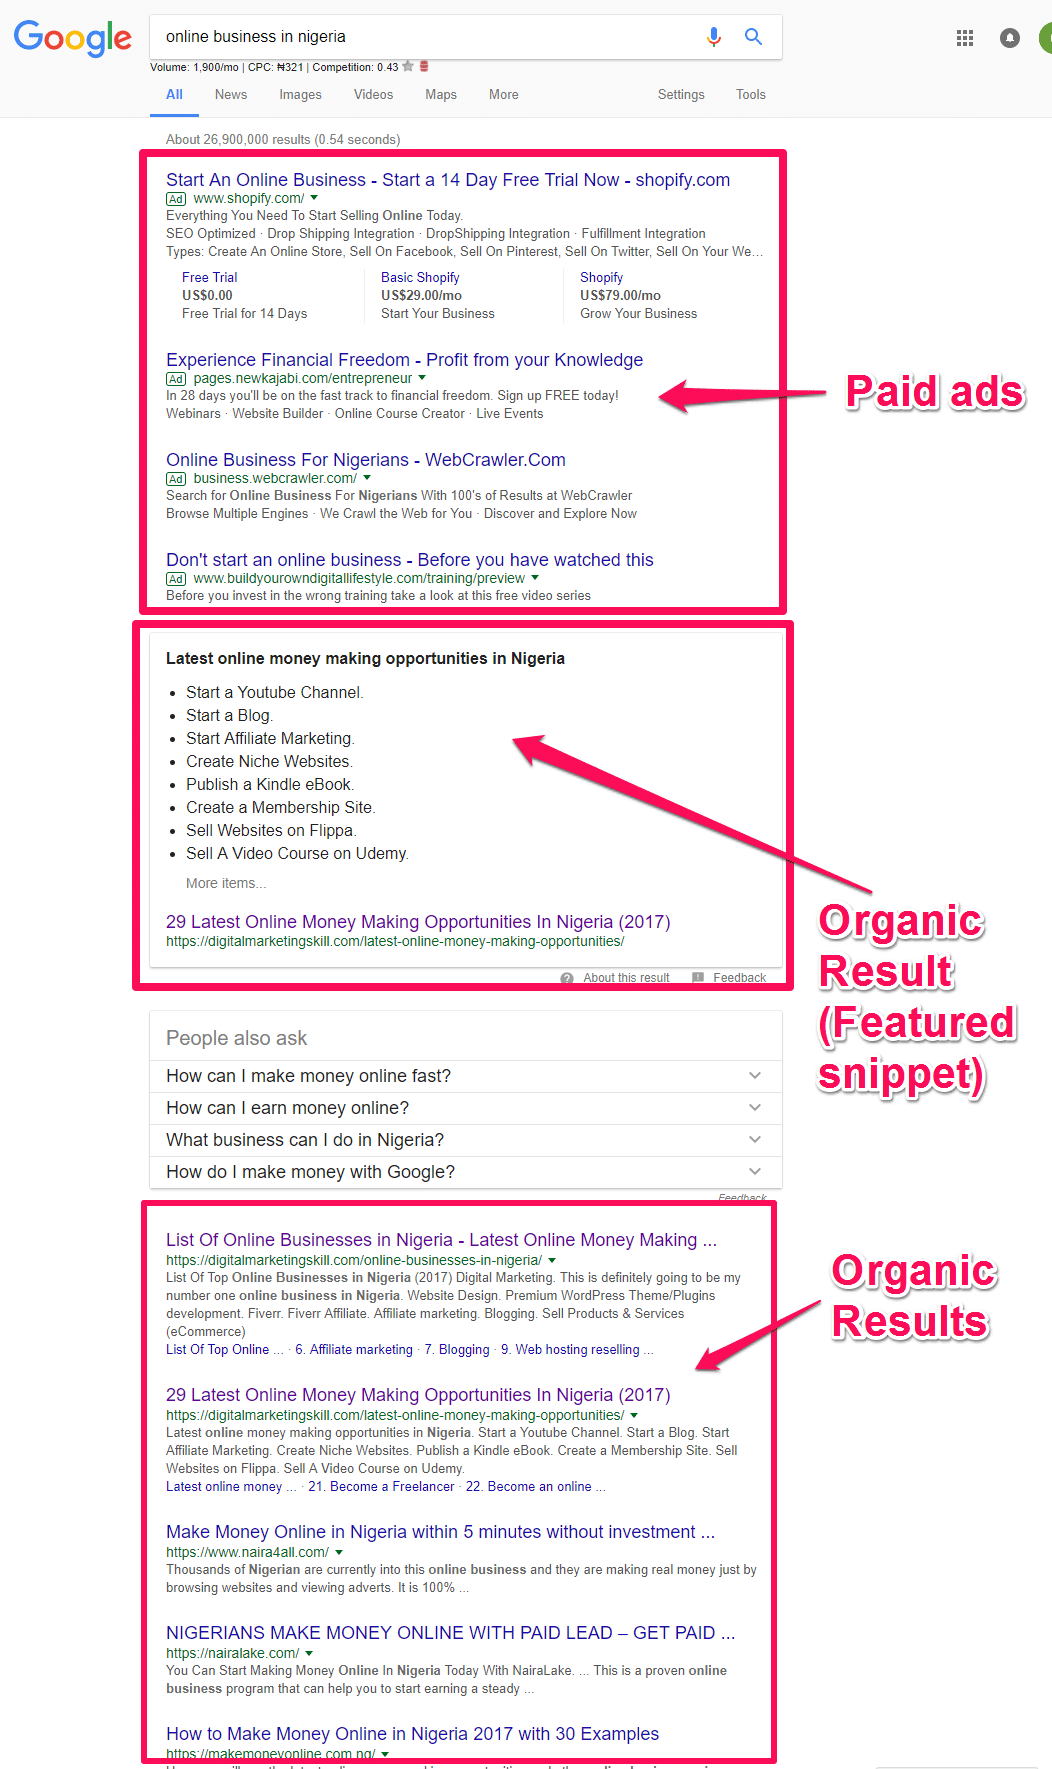 ORGANIC VS PAID ADS RESULTS EXPLAINED